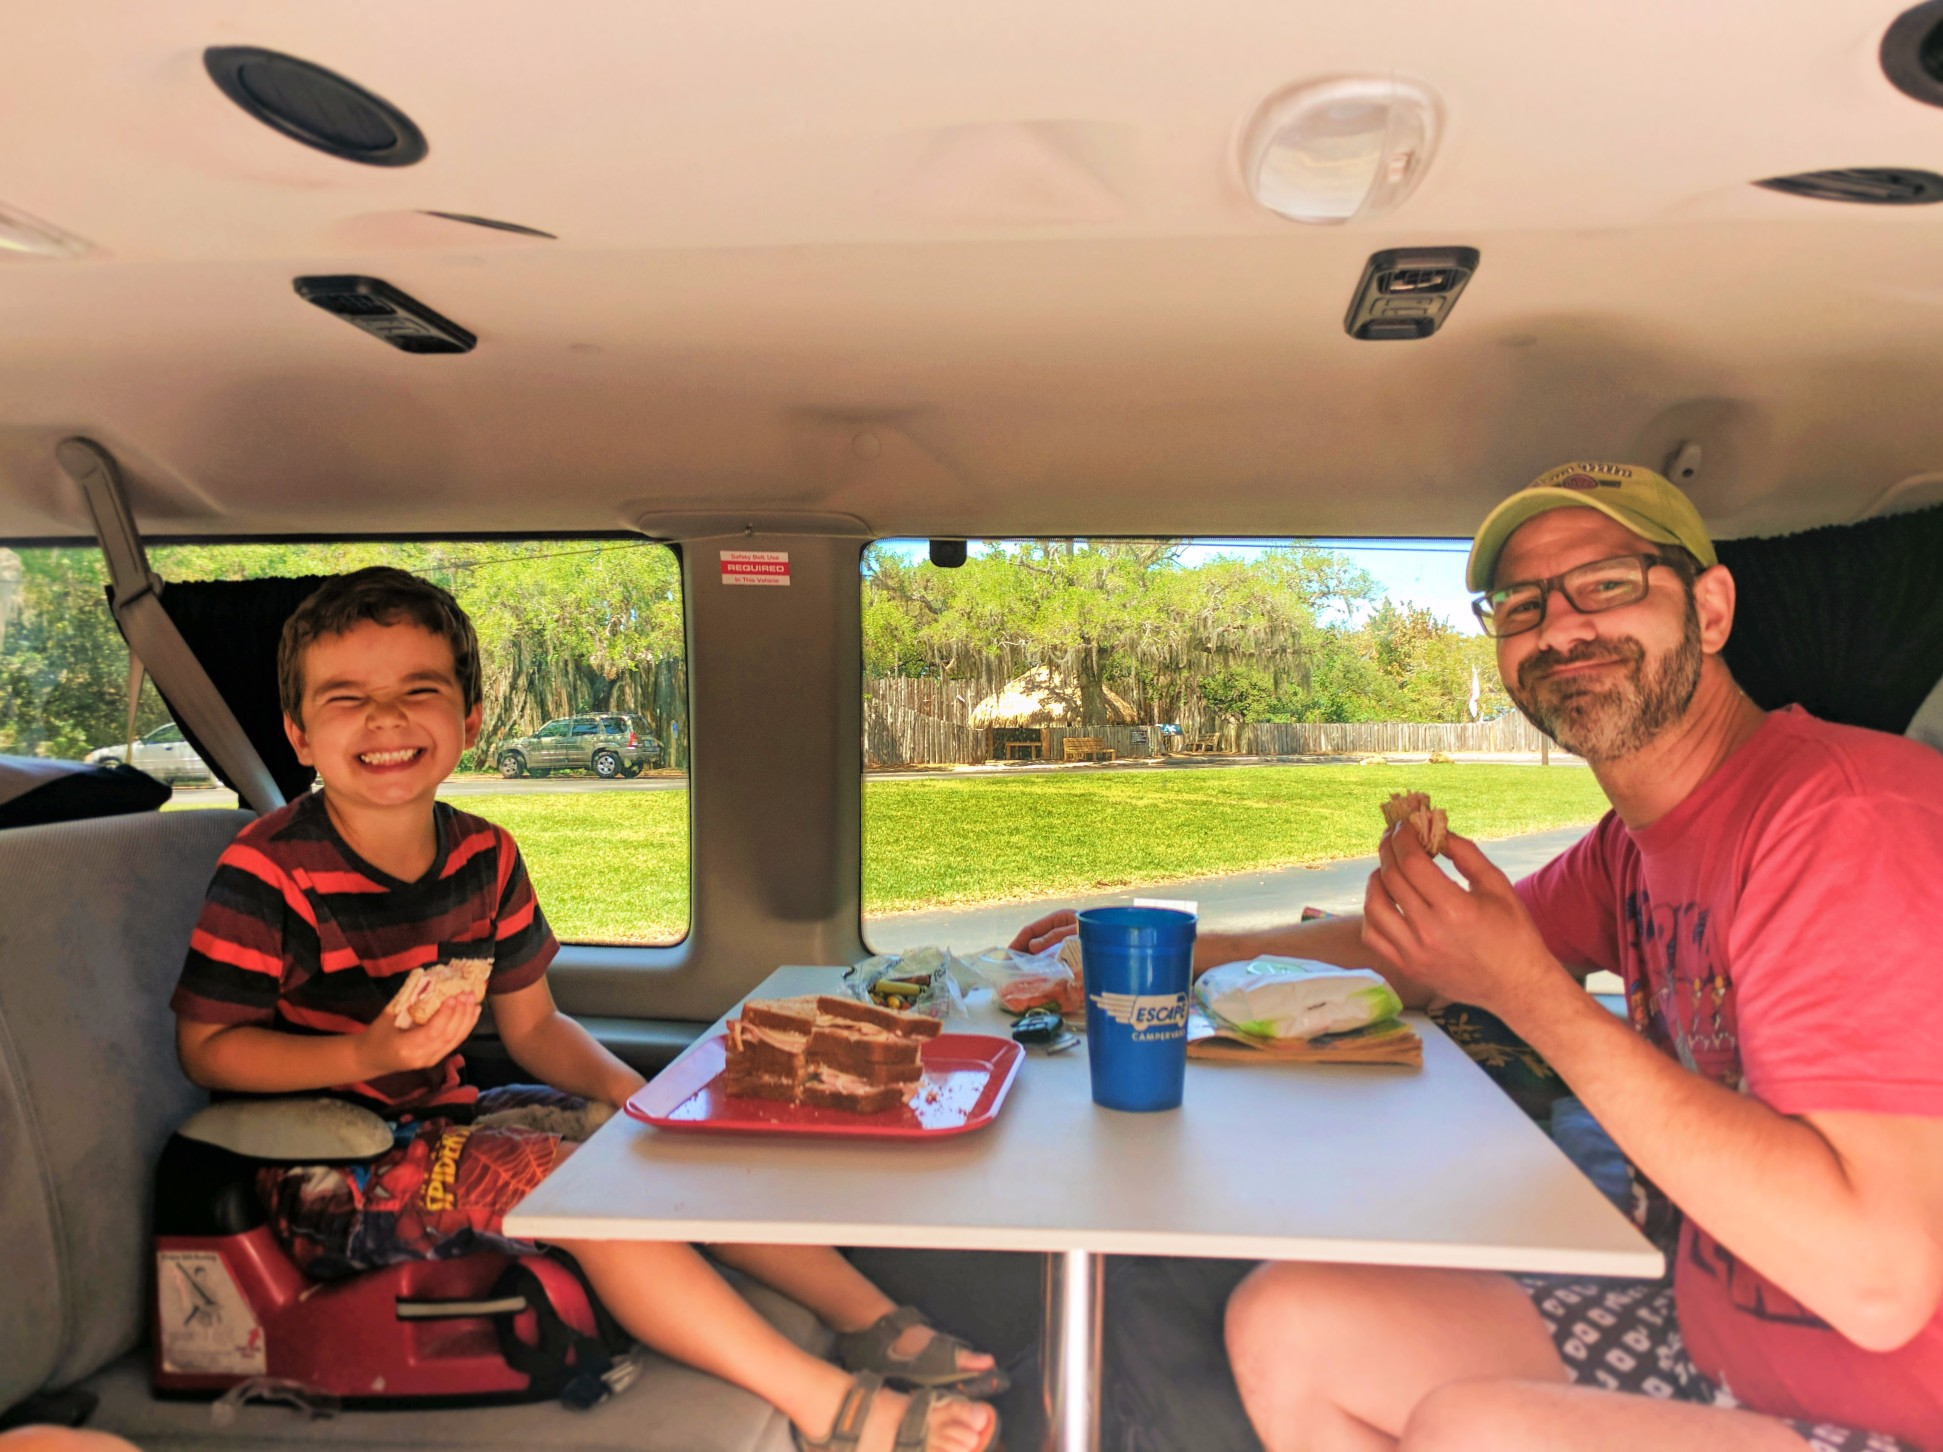 Taylor Family eating in Escape Campervan De Soto National Memorial Bradenton 1